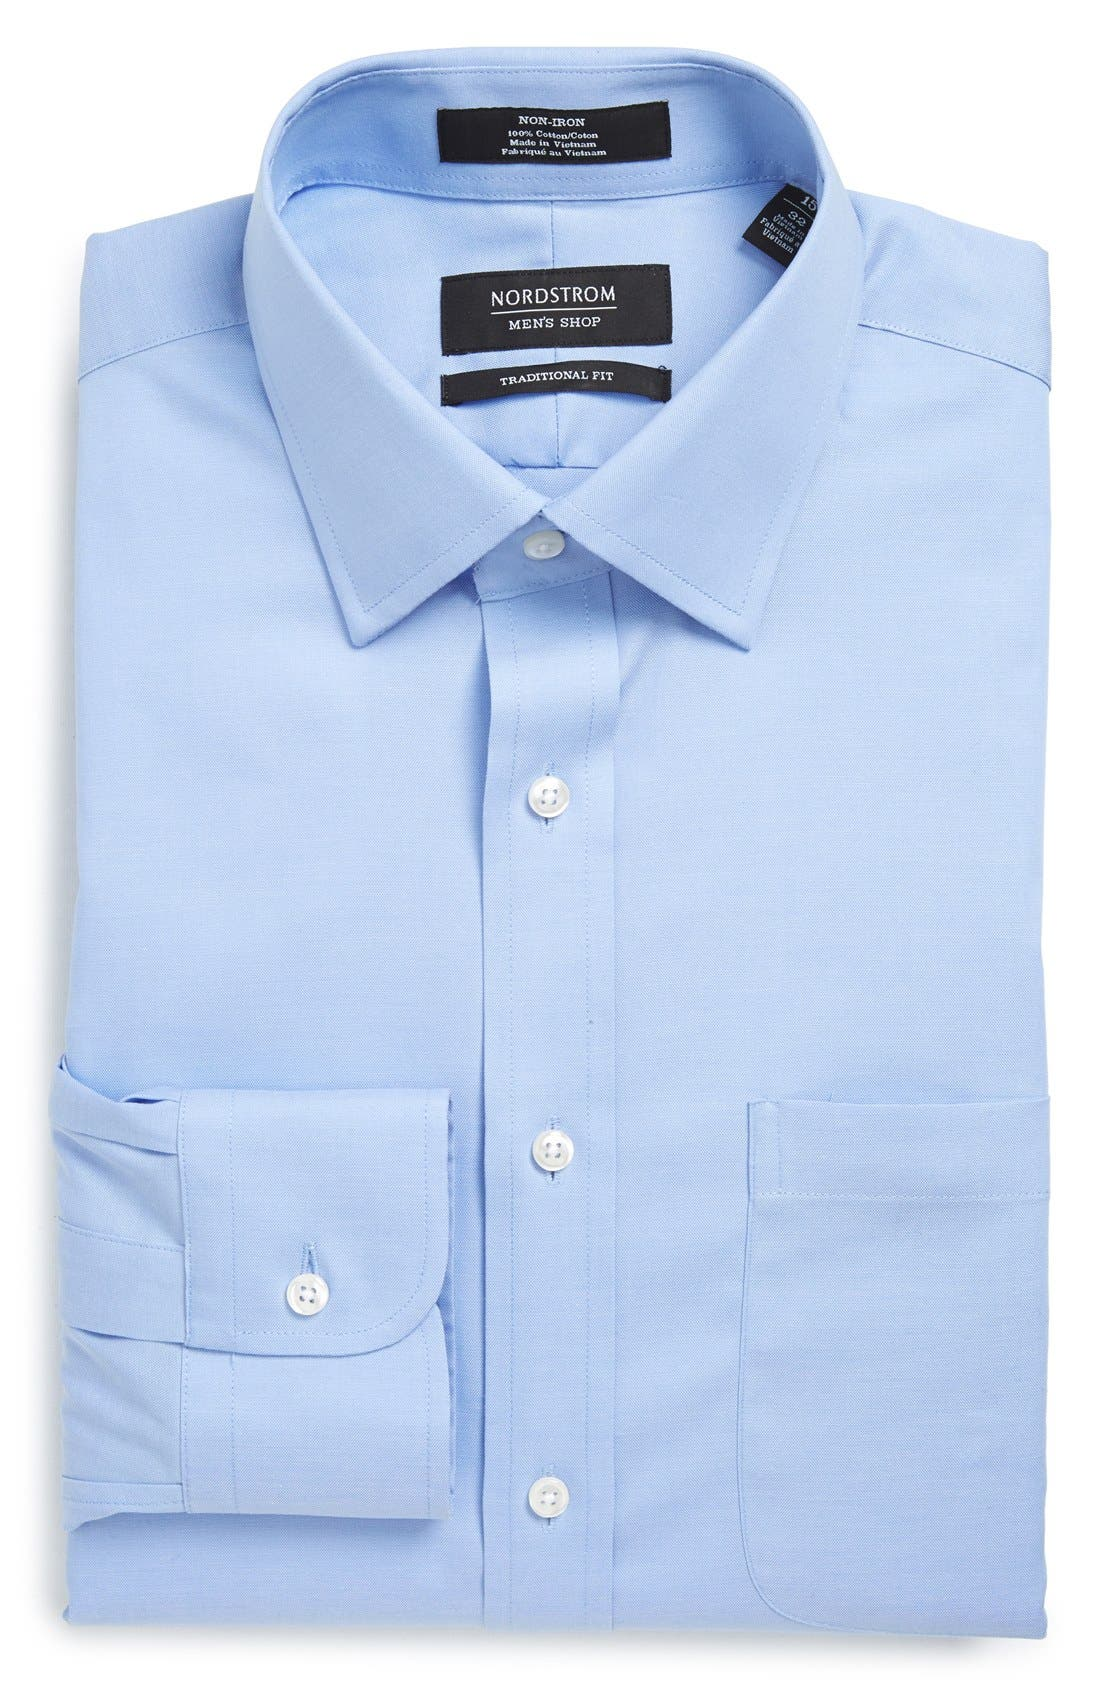 Main Image - Nordstrom Men's Shop Traditional Fit Non-Iron Solid Dress Shirt